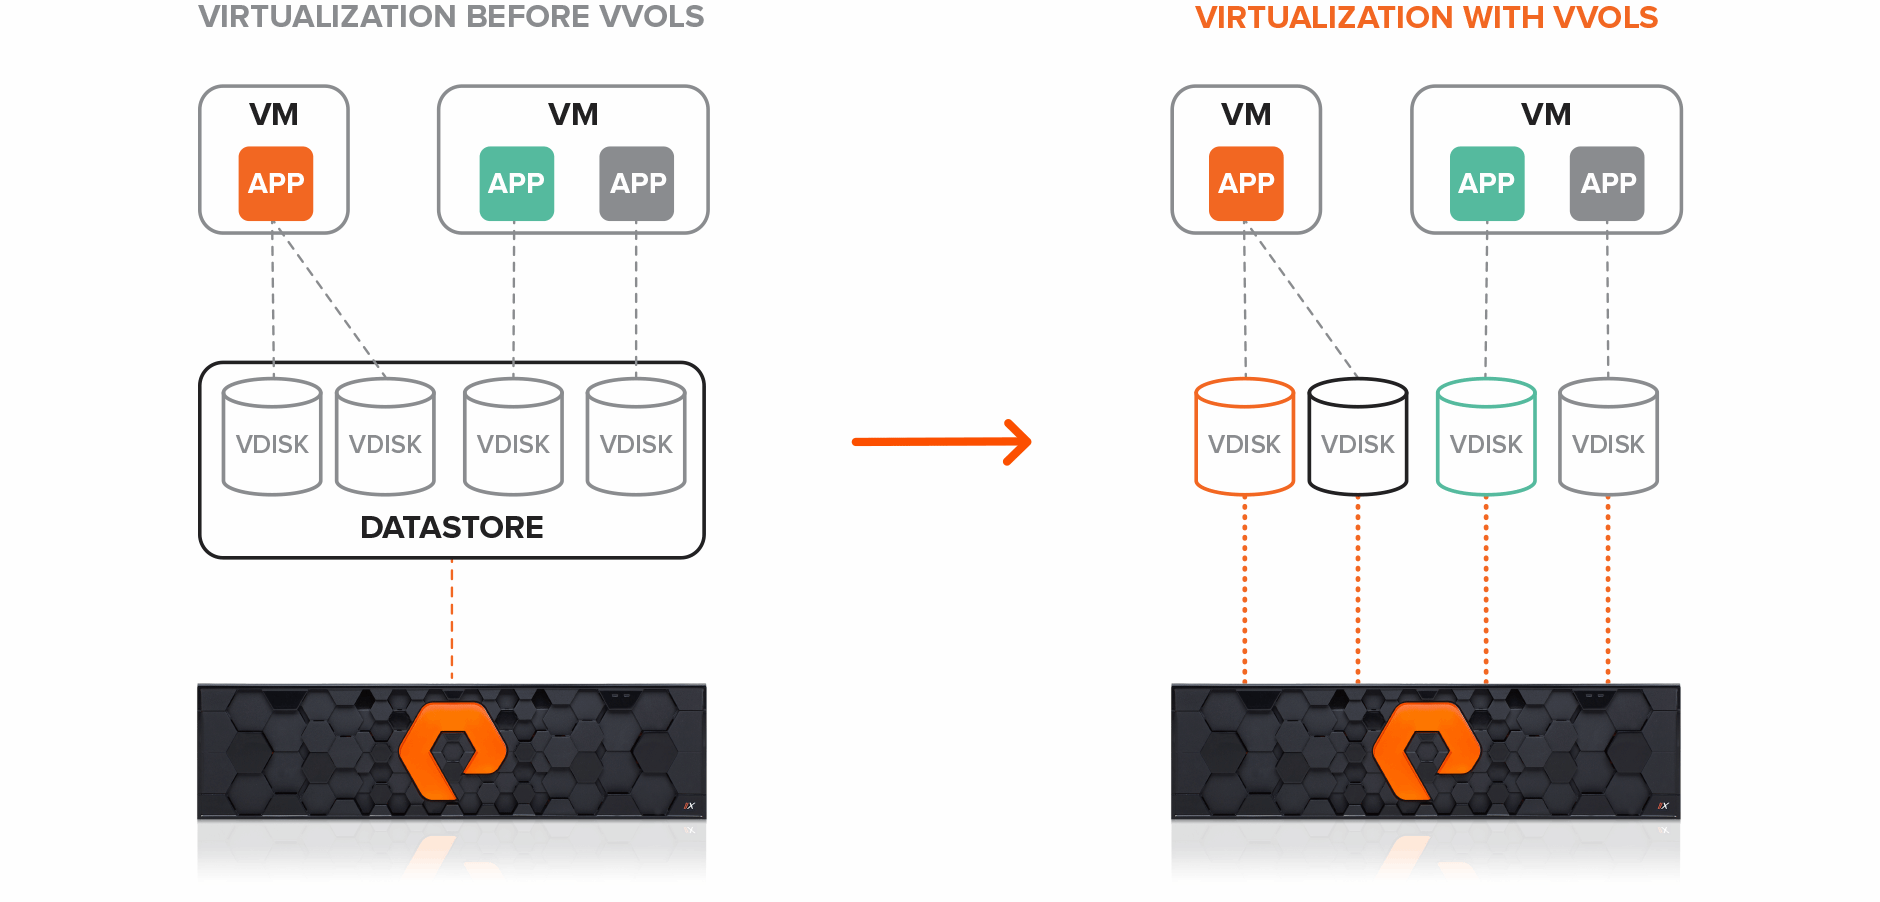 Virtualization with VVols on FlashArray